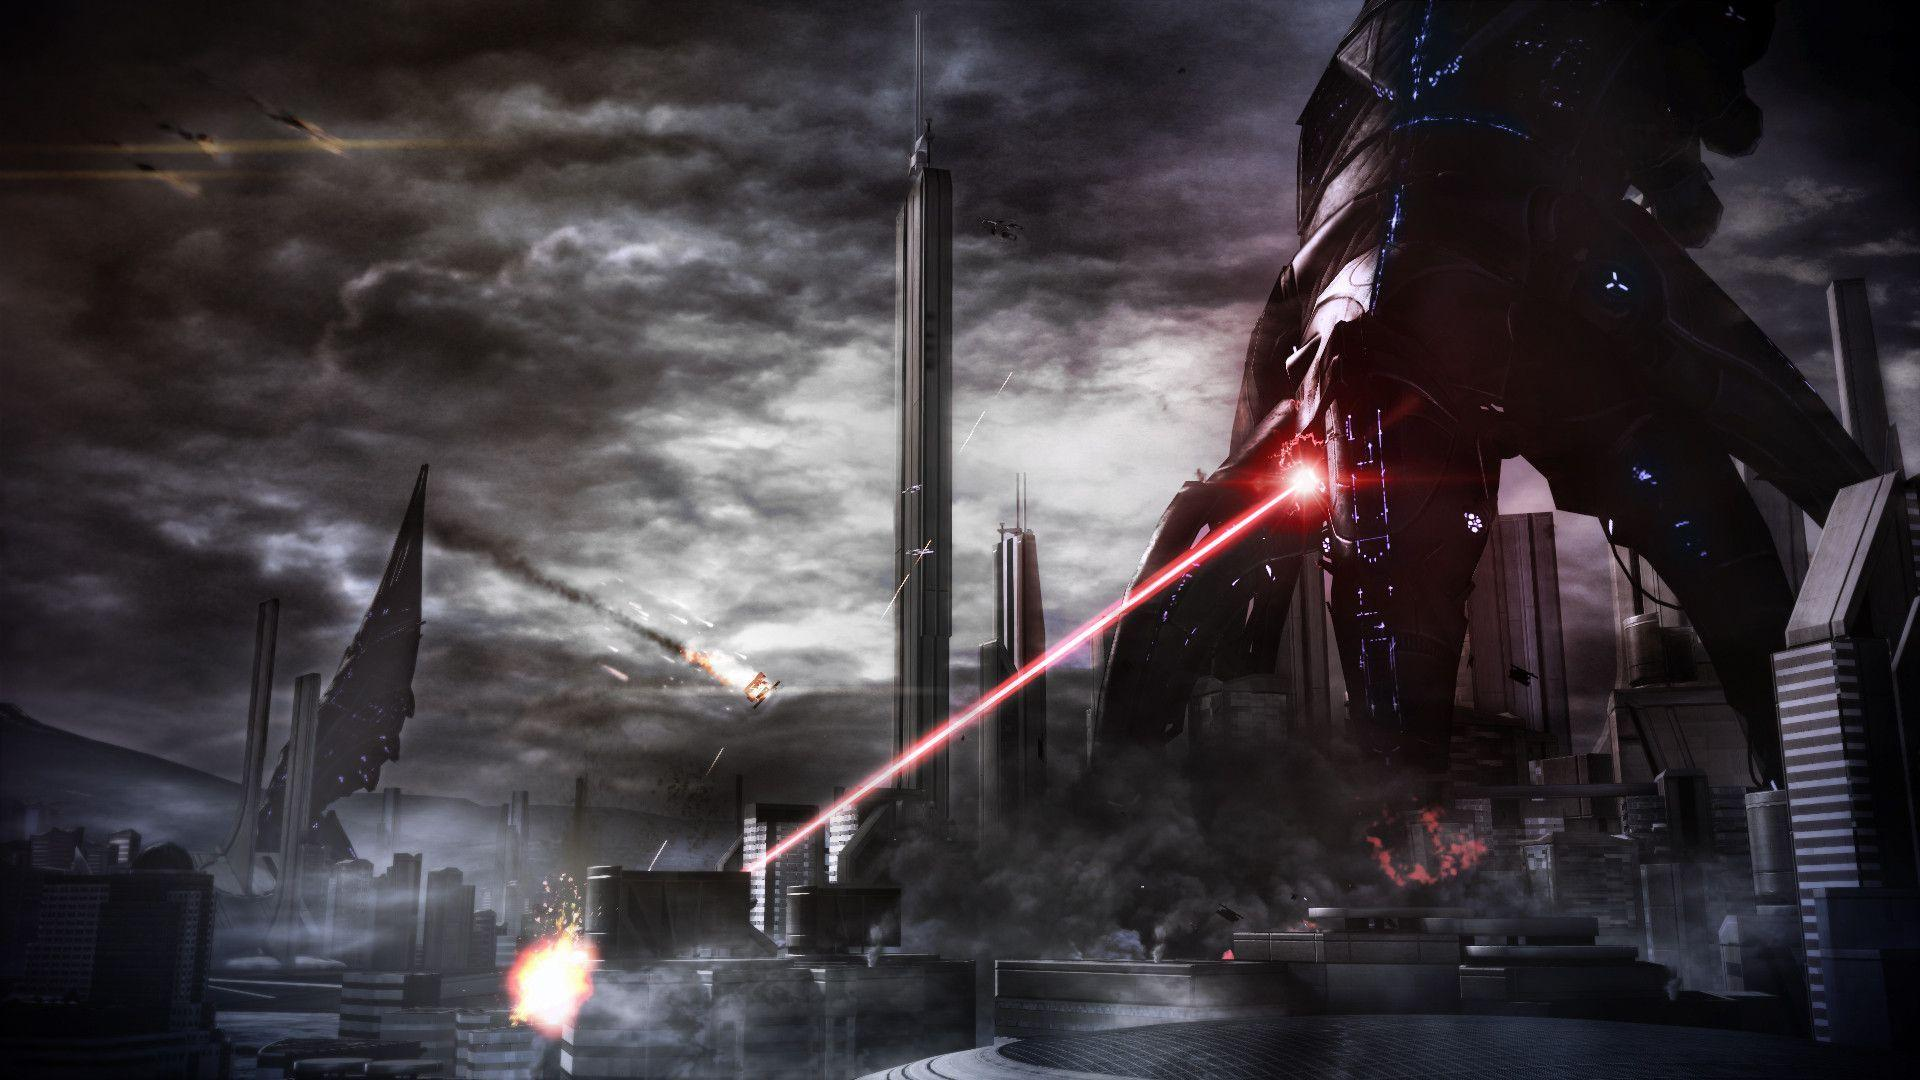 Mass Effect Reapers Wallpapers - Wallpaper Cave